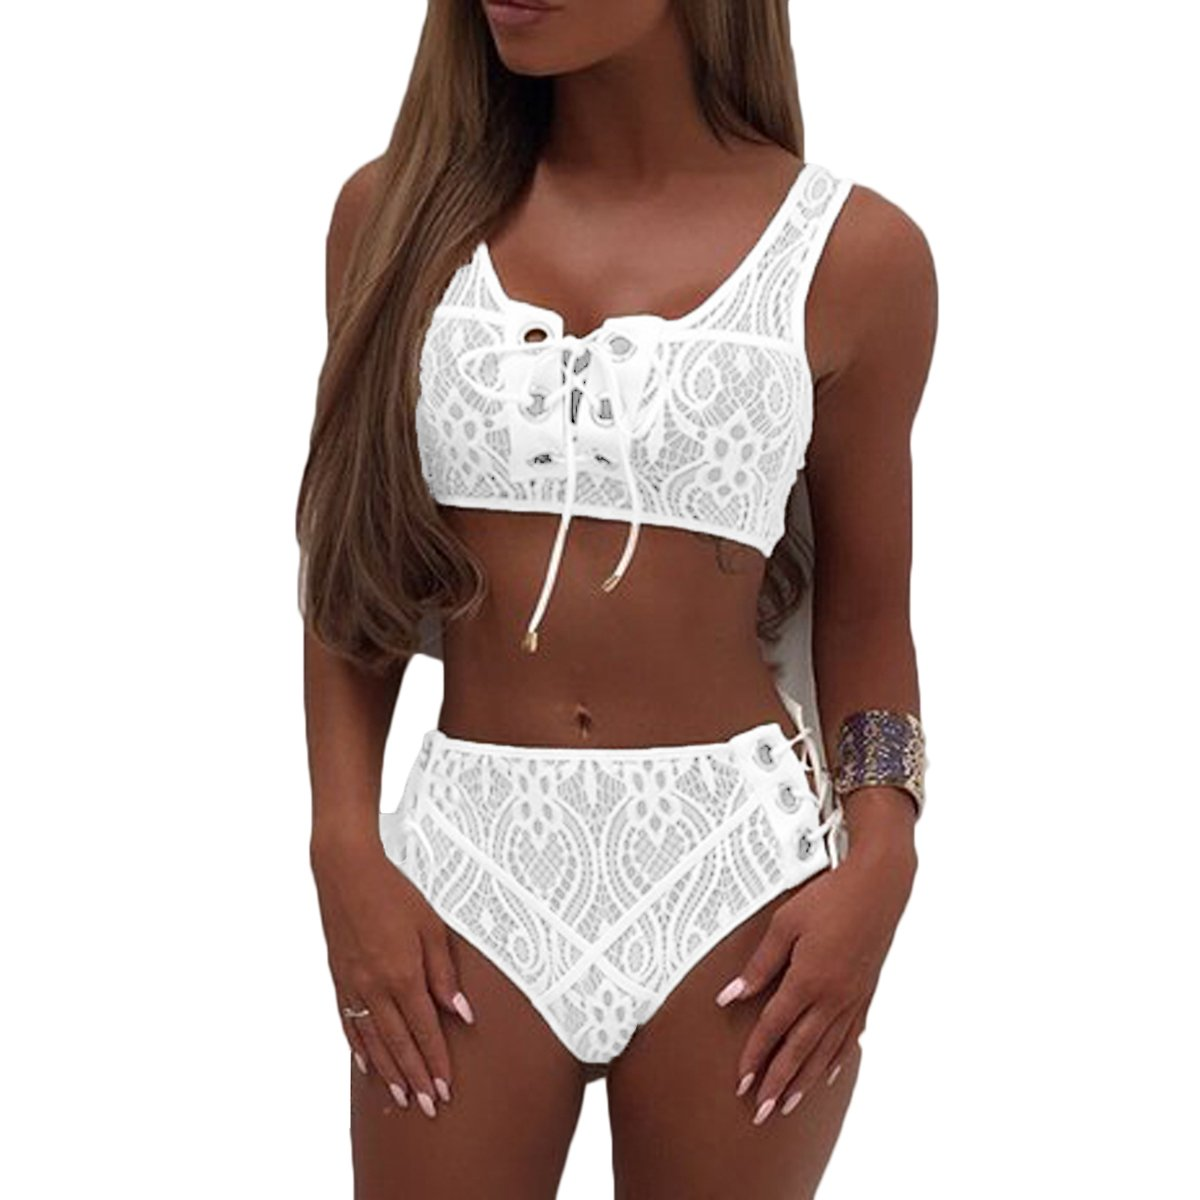 Almaree Womans Lace up Front High Waist Two Piece Bikini Set Lace Swimsuit White XL